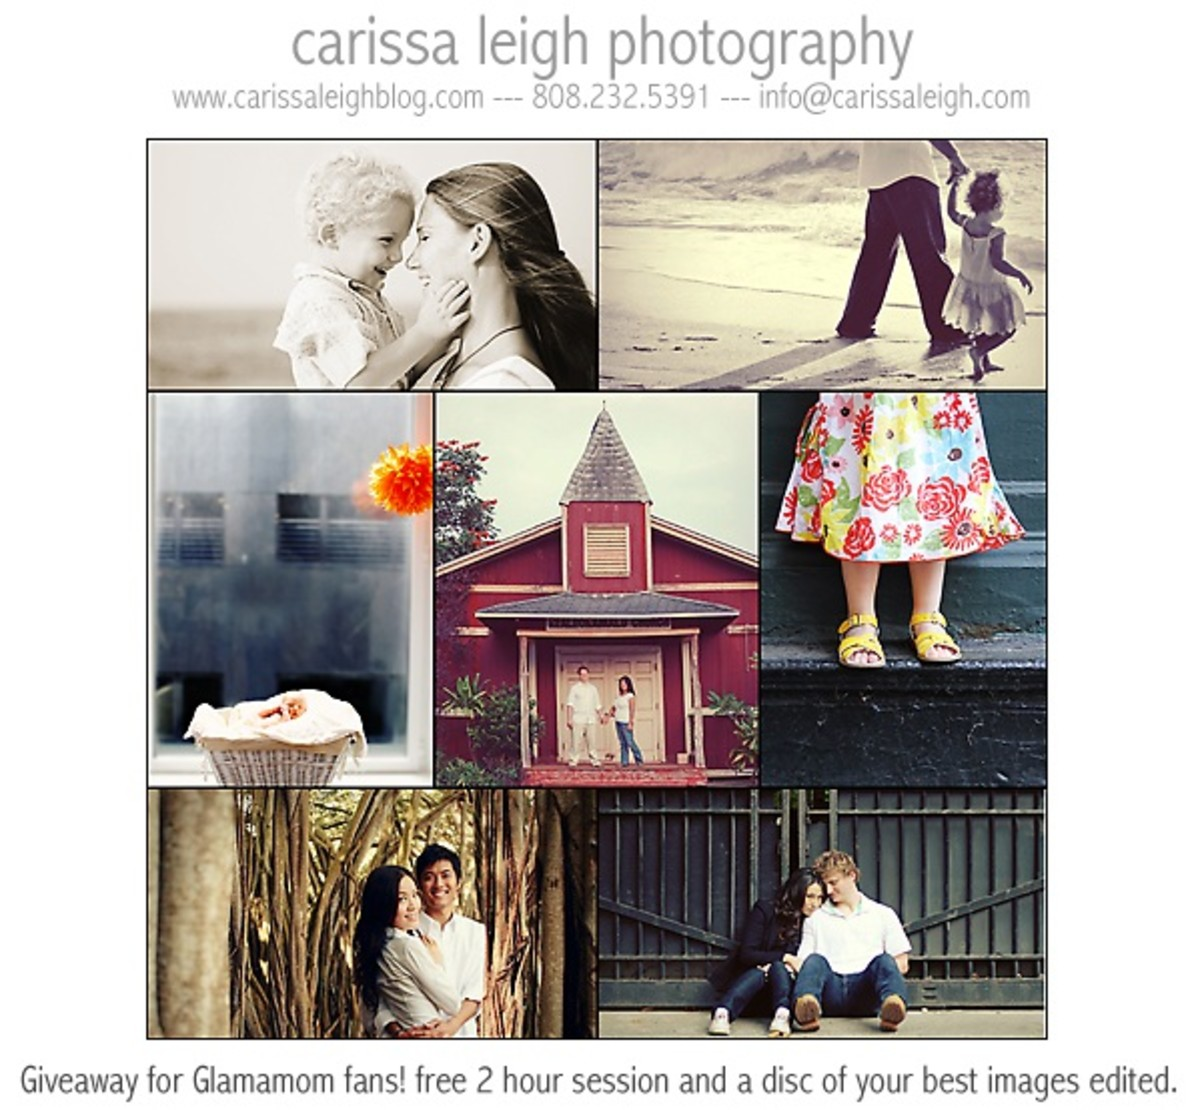 Carissa Leigh Photography Glamamom Giveaway